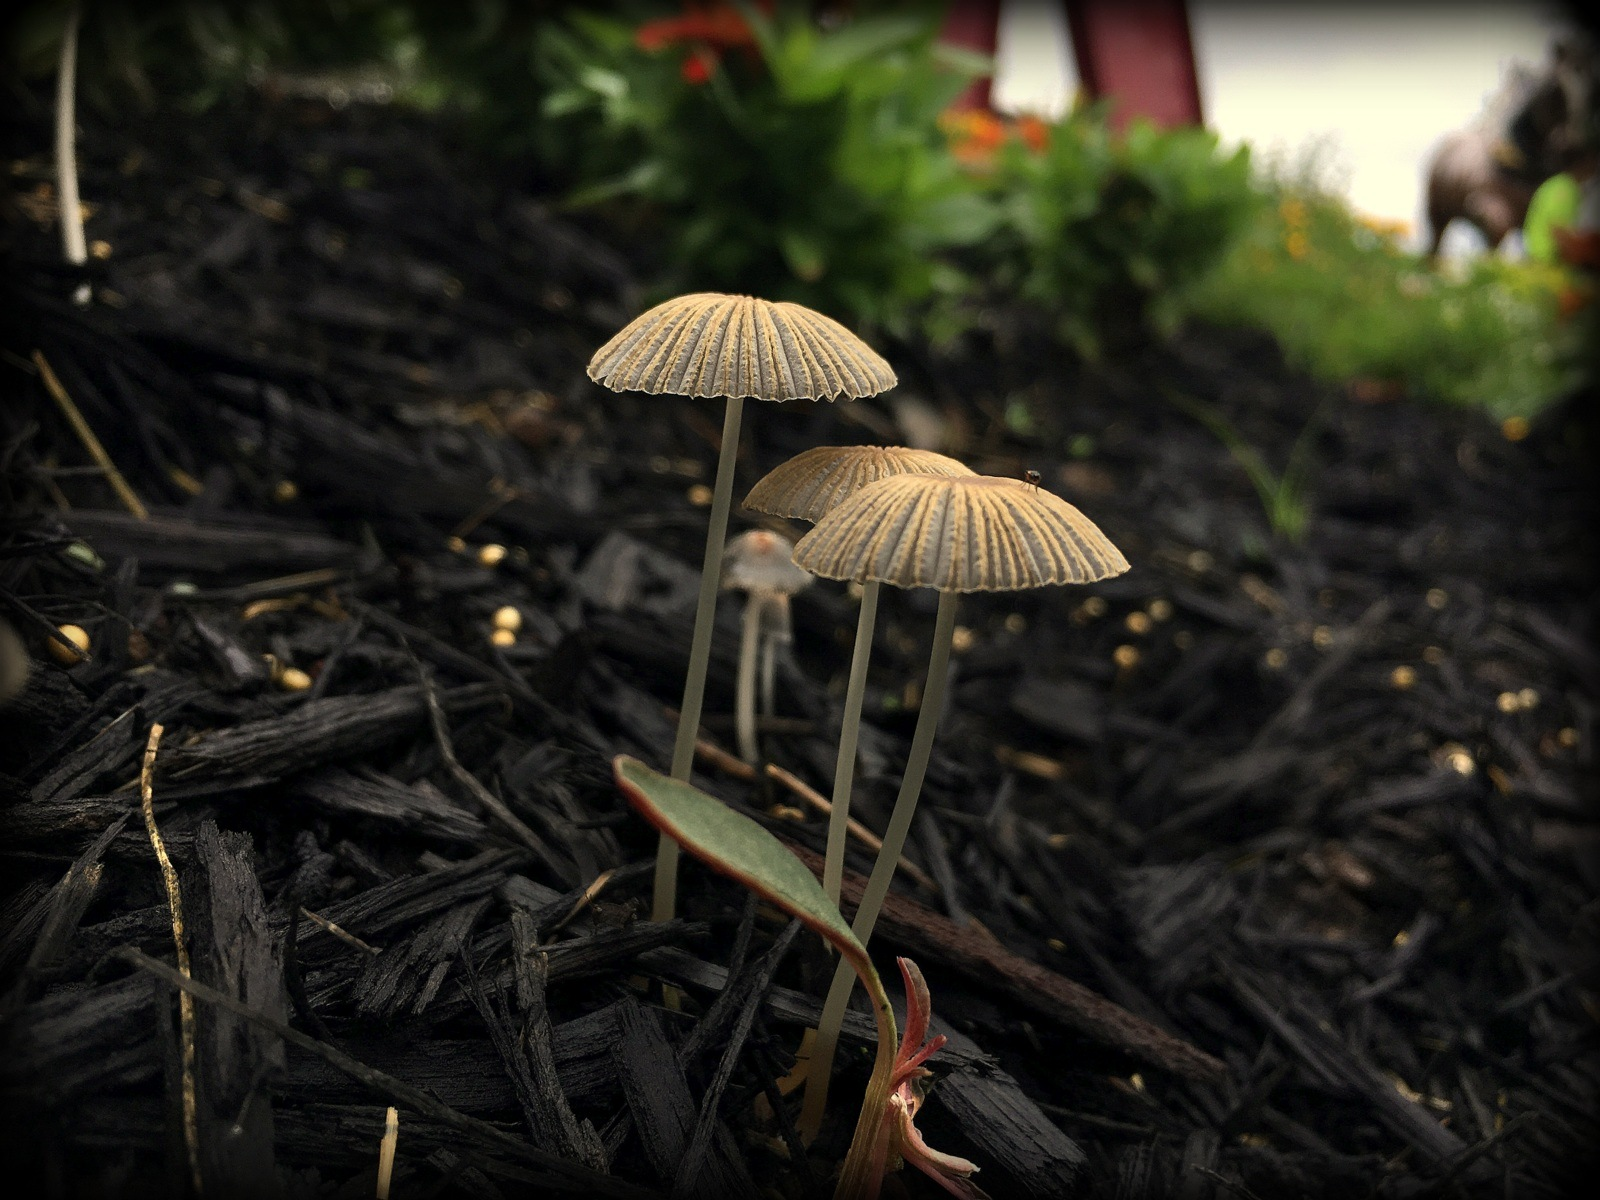 Mushrooms  by Brianna Shoults